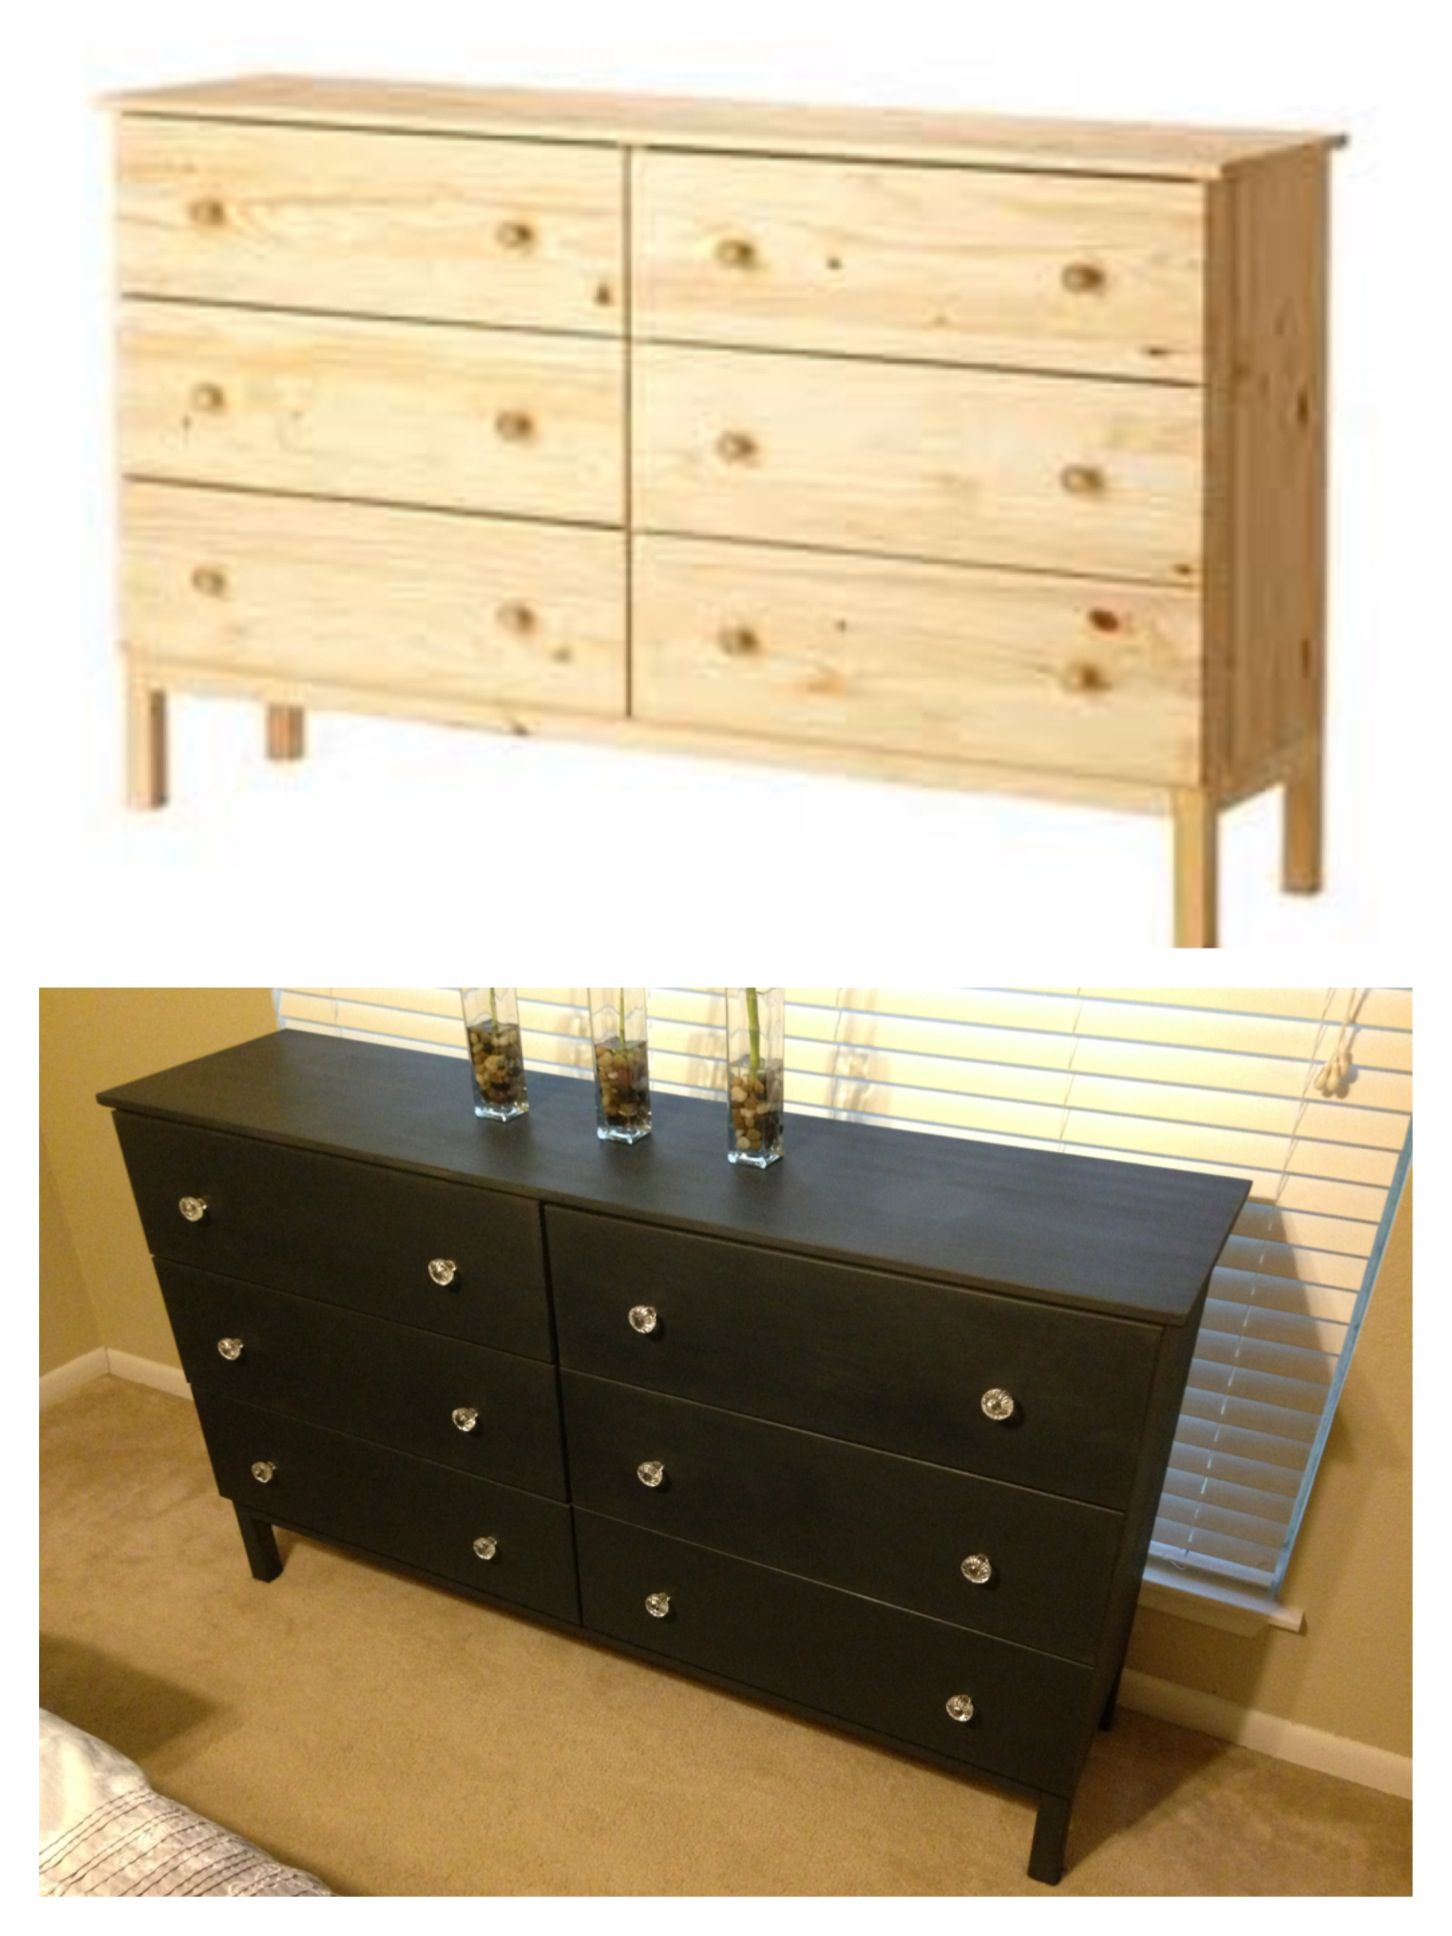 ikea tarva dresser refinished with annie sloan chalk paint in graphite with clear wax finish and. Black Bedroom Furniture Sets. Home Design Ideas